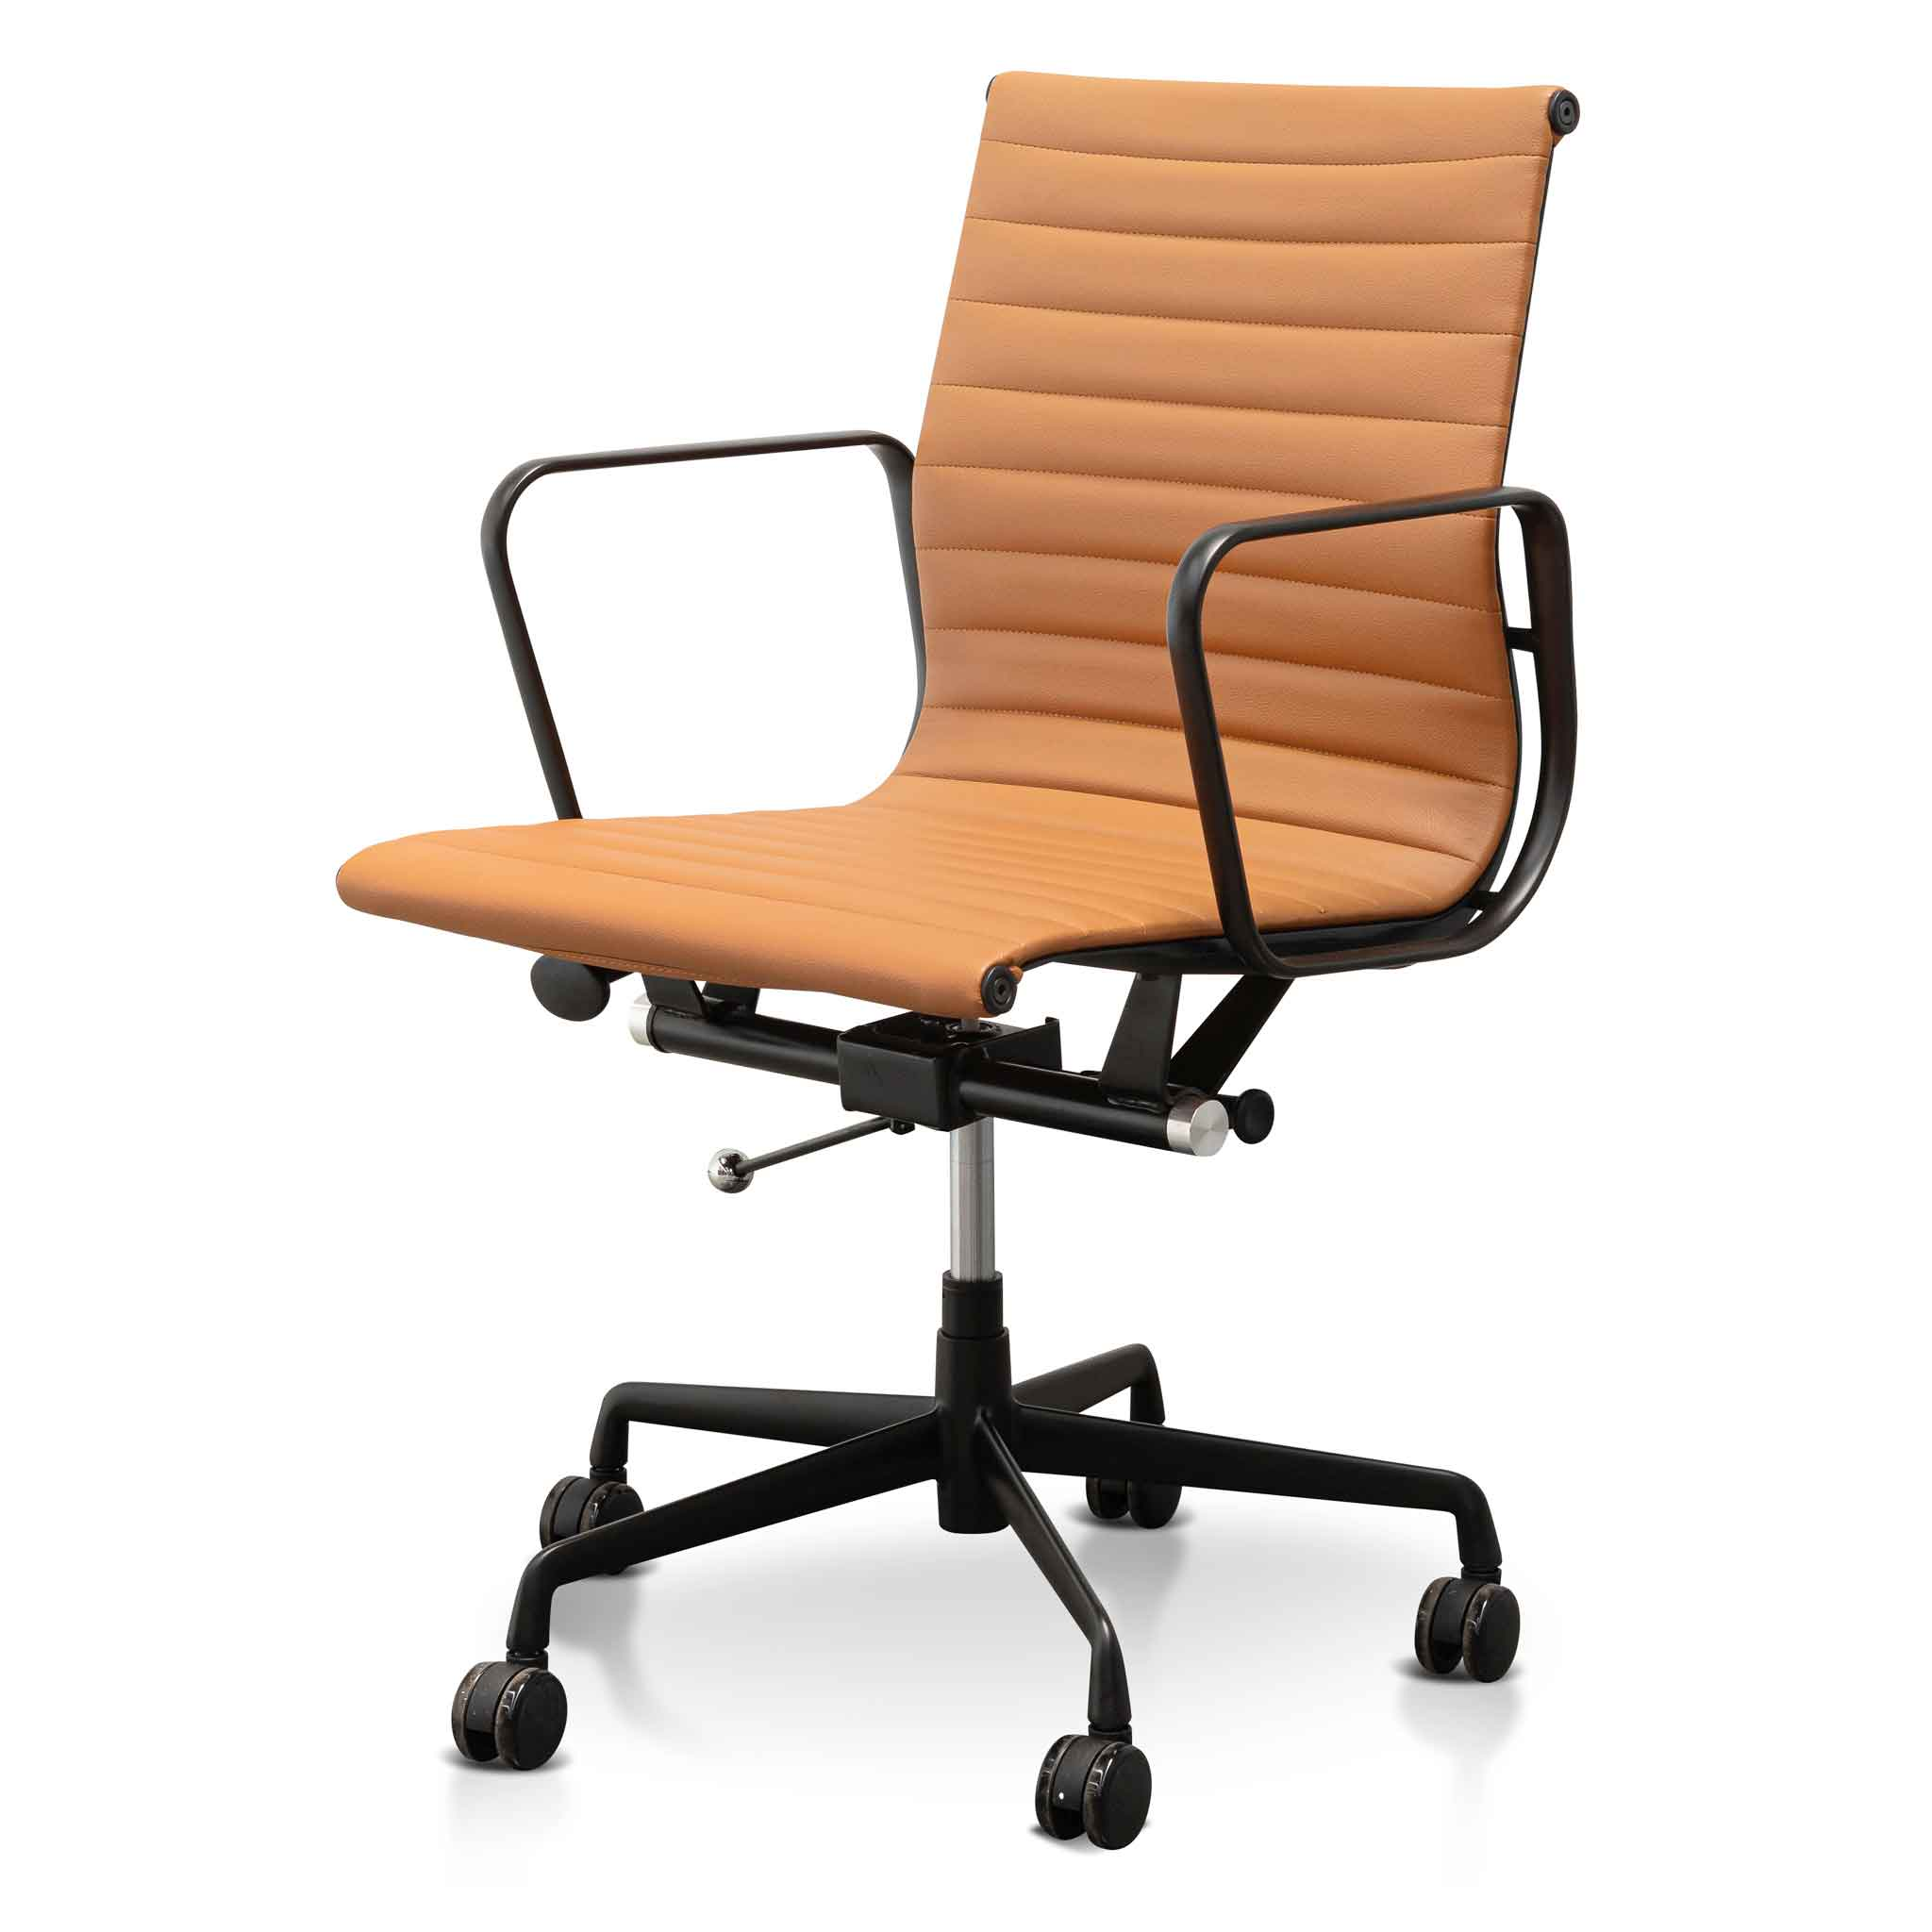 Gaute Low Back Office Chair - Saddle Tan in Black Frame